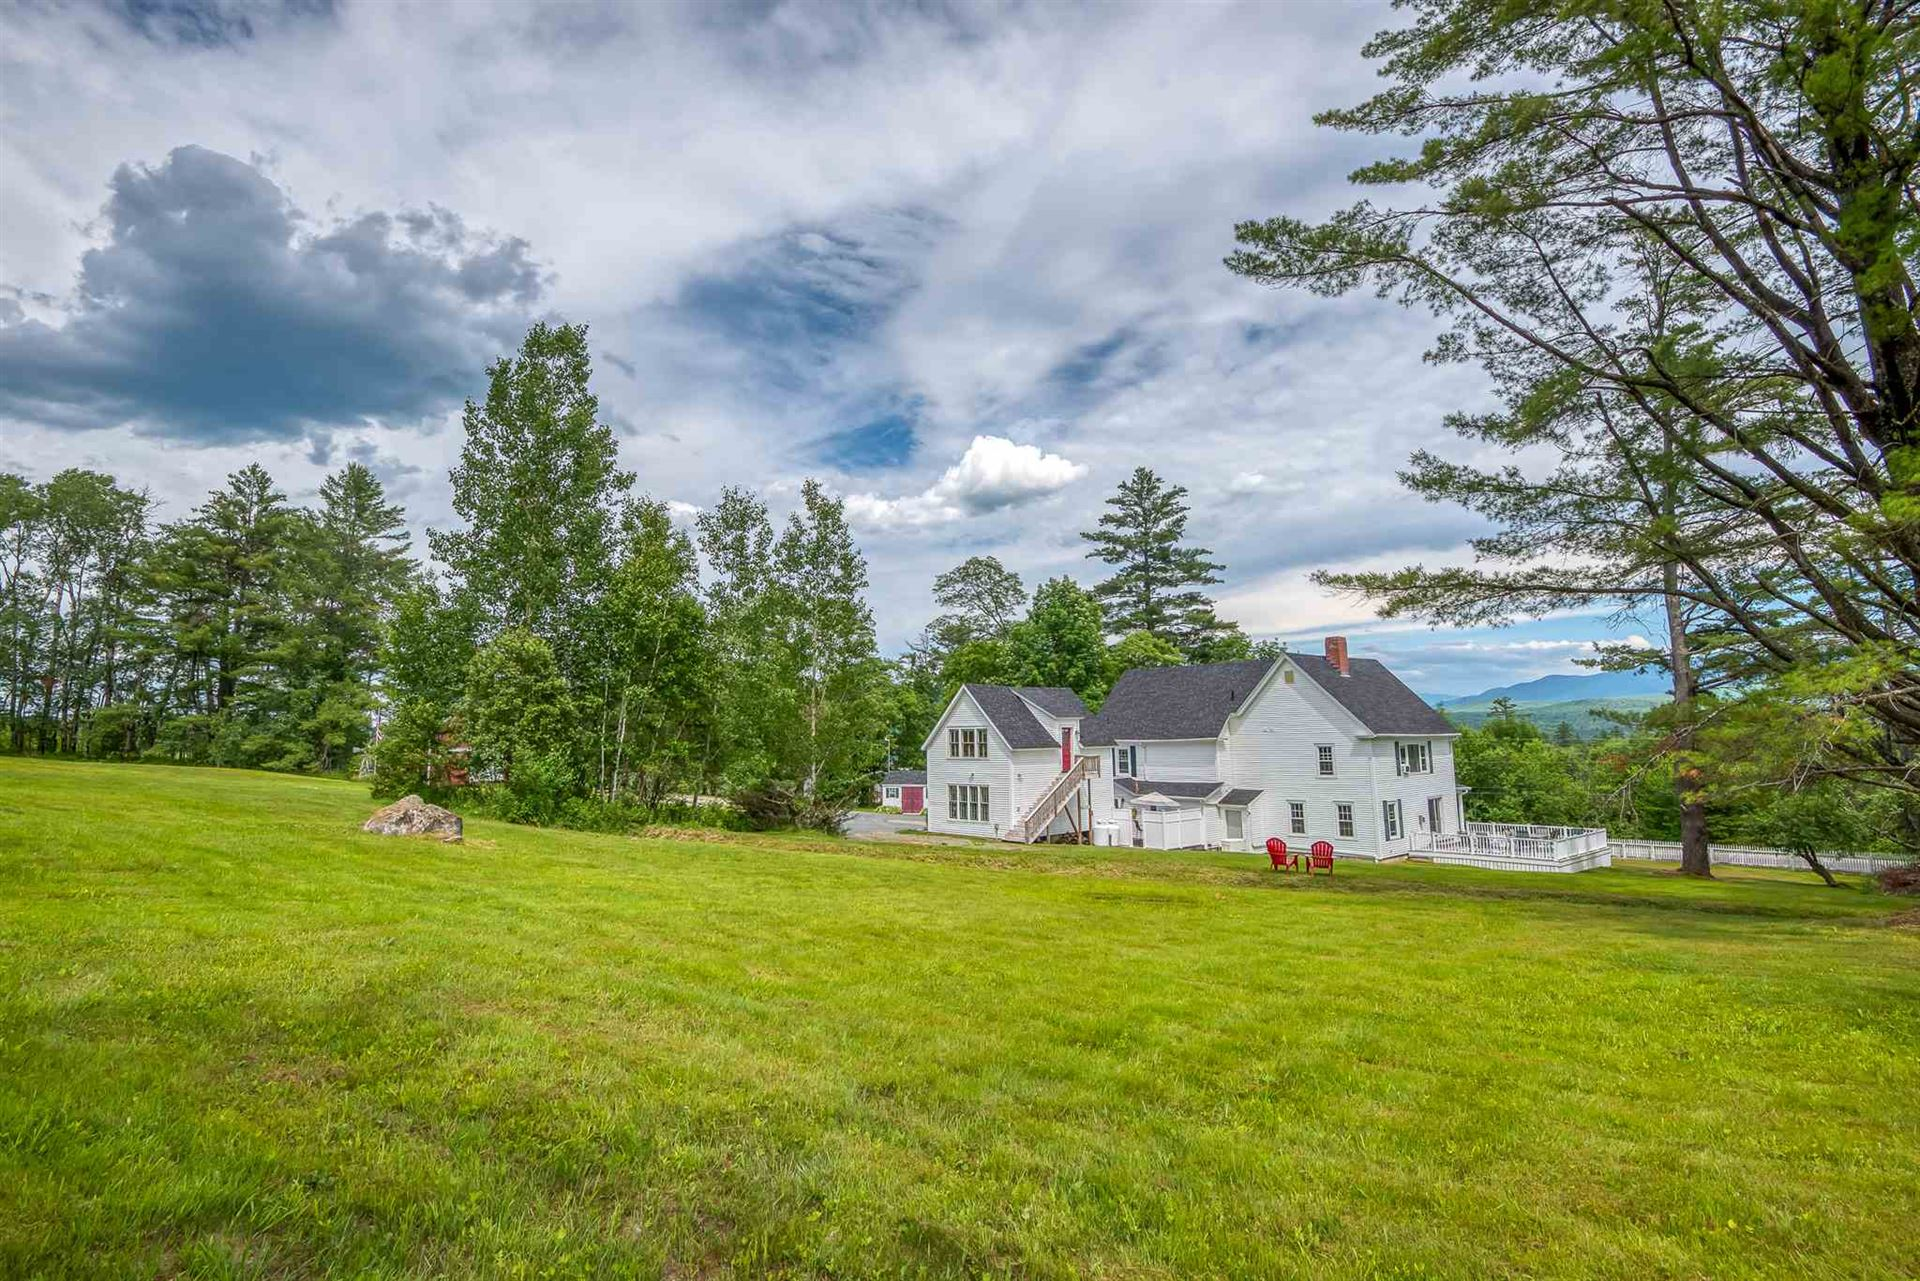 864 Lovers Lane, Sugar Hill, NH 03586 - #: 4814248